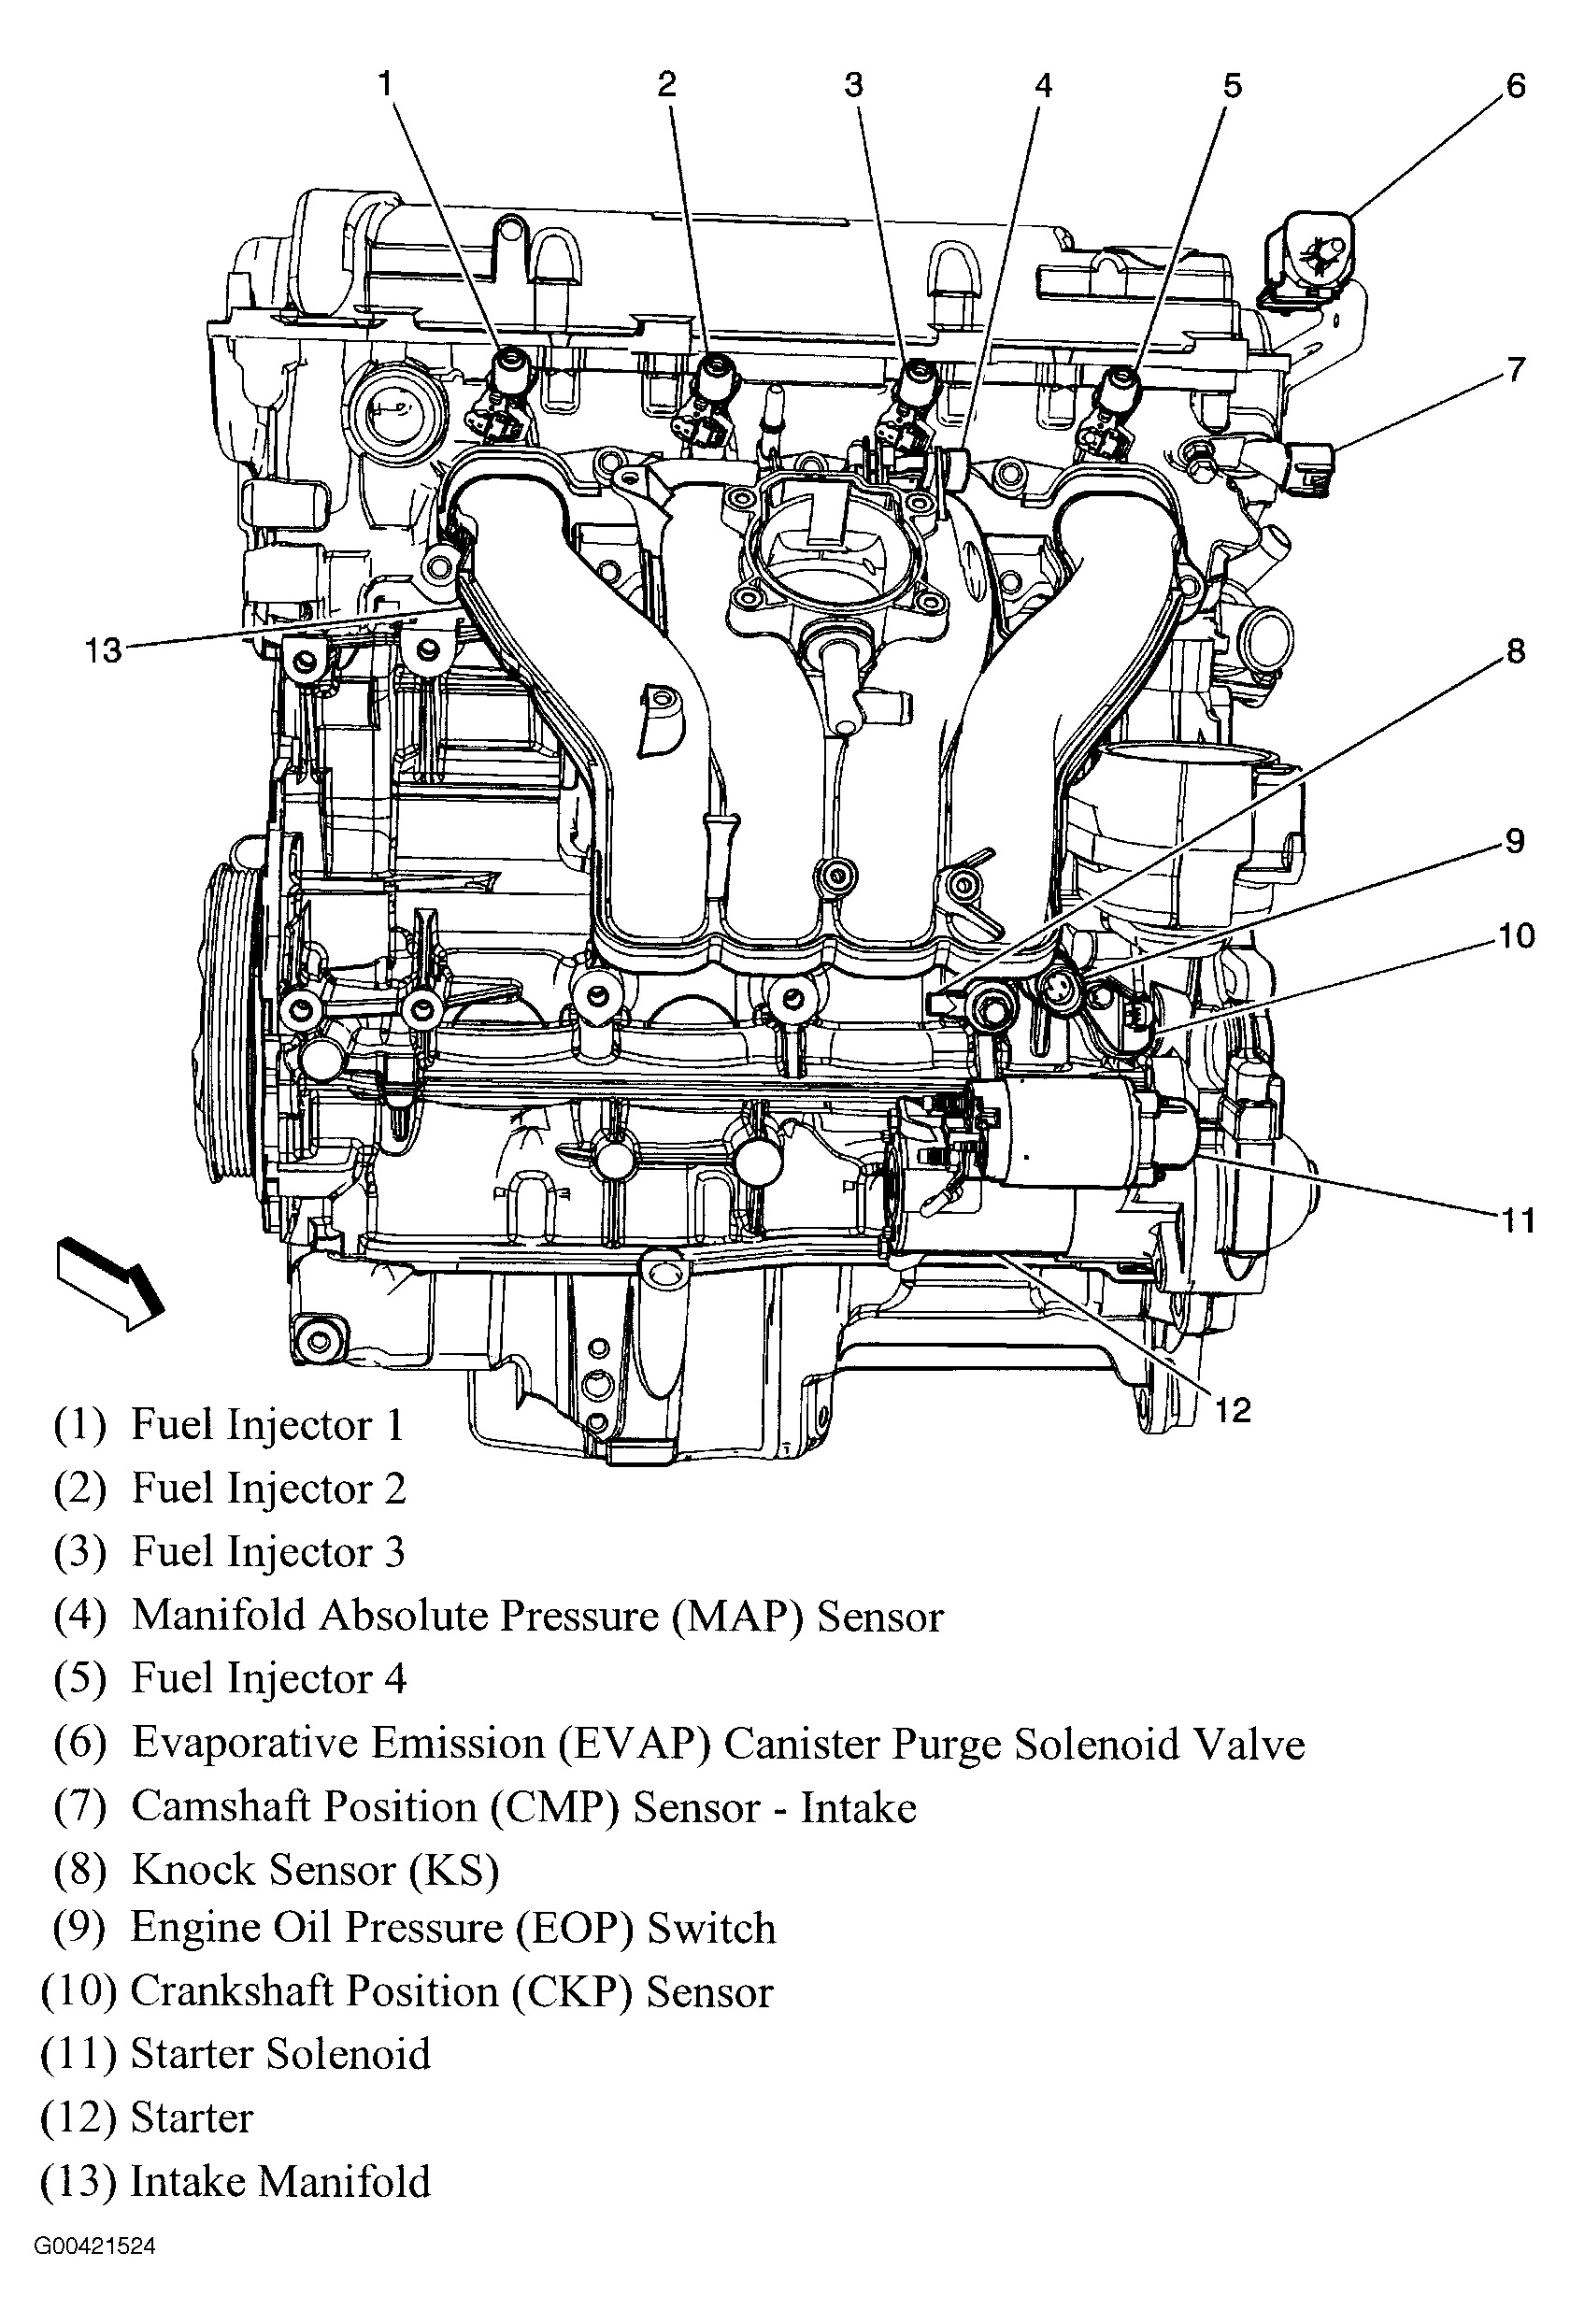 2006 hhr engine diagram